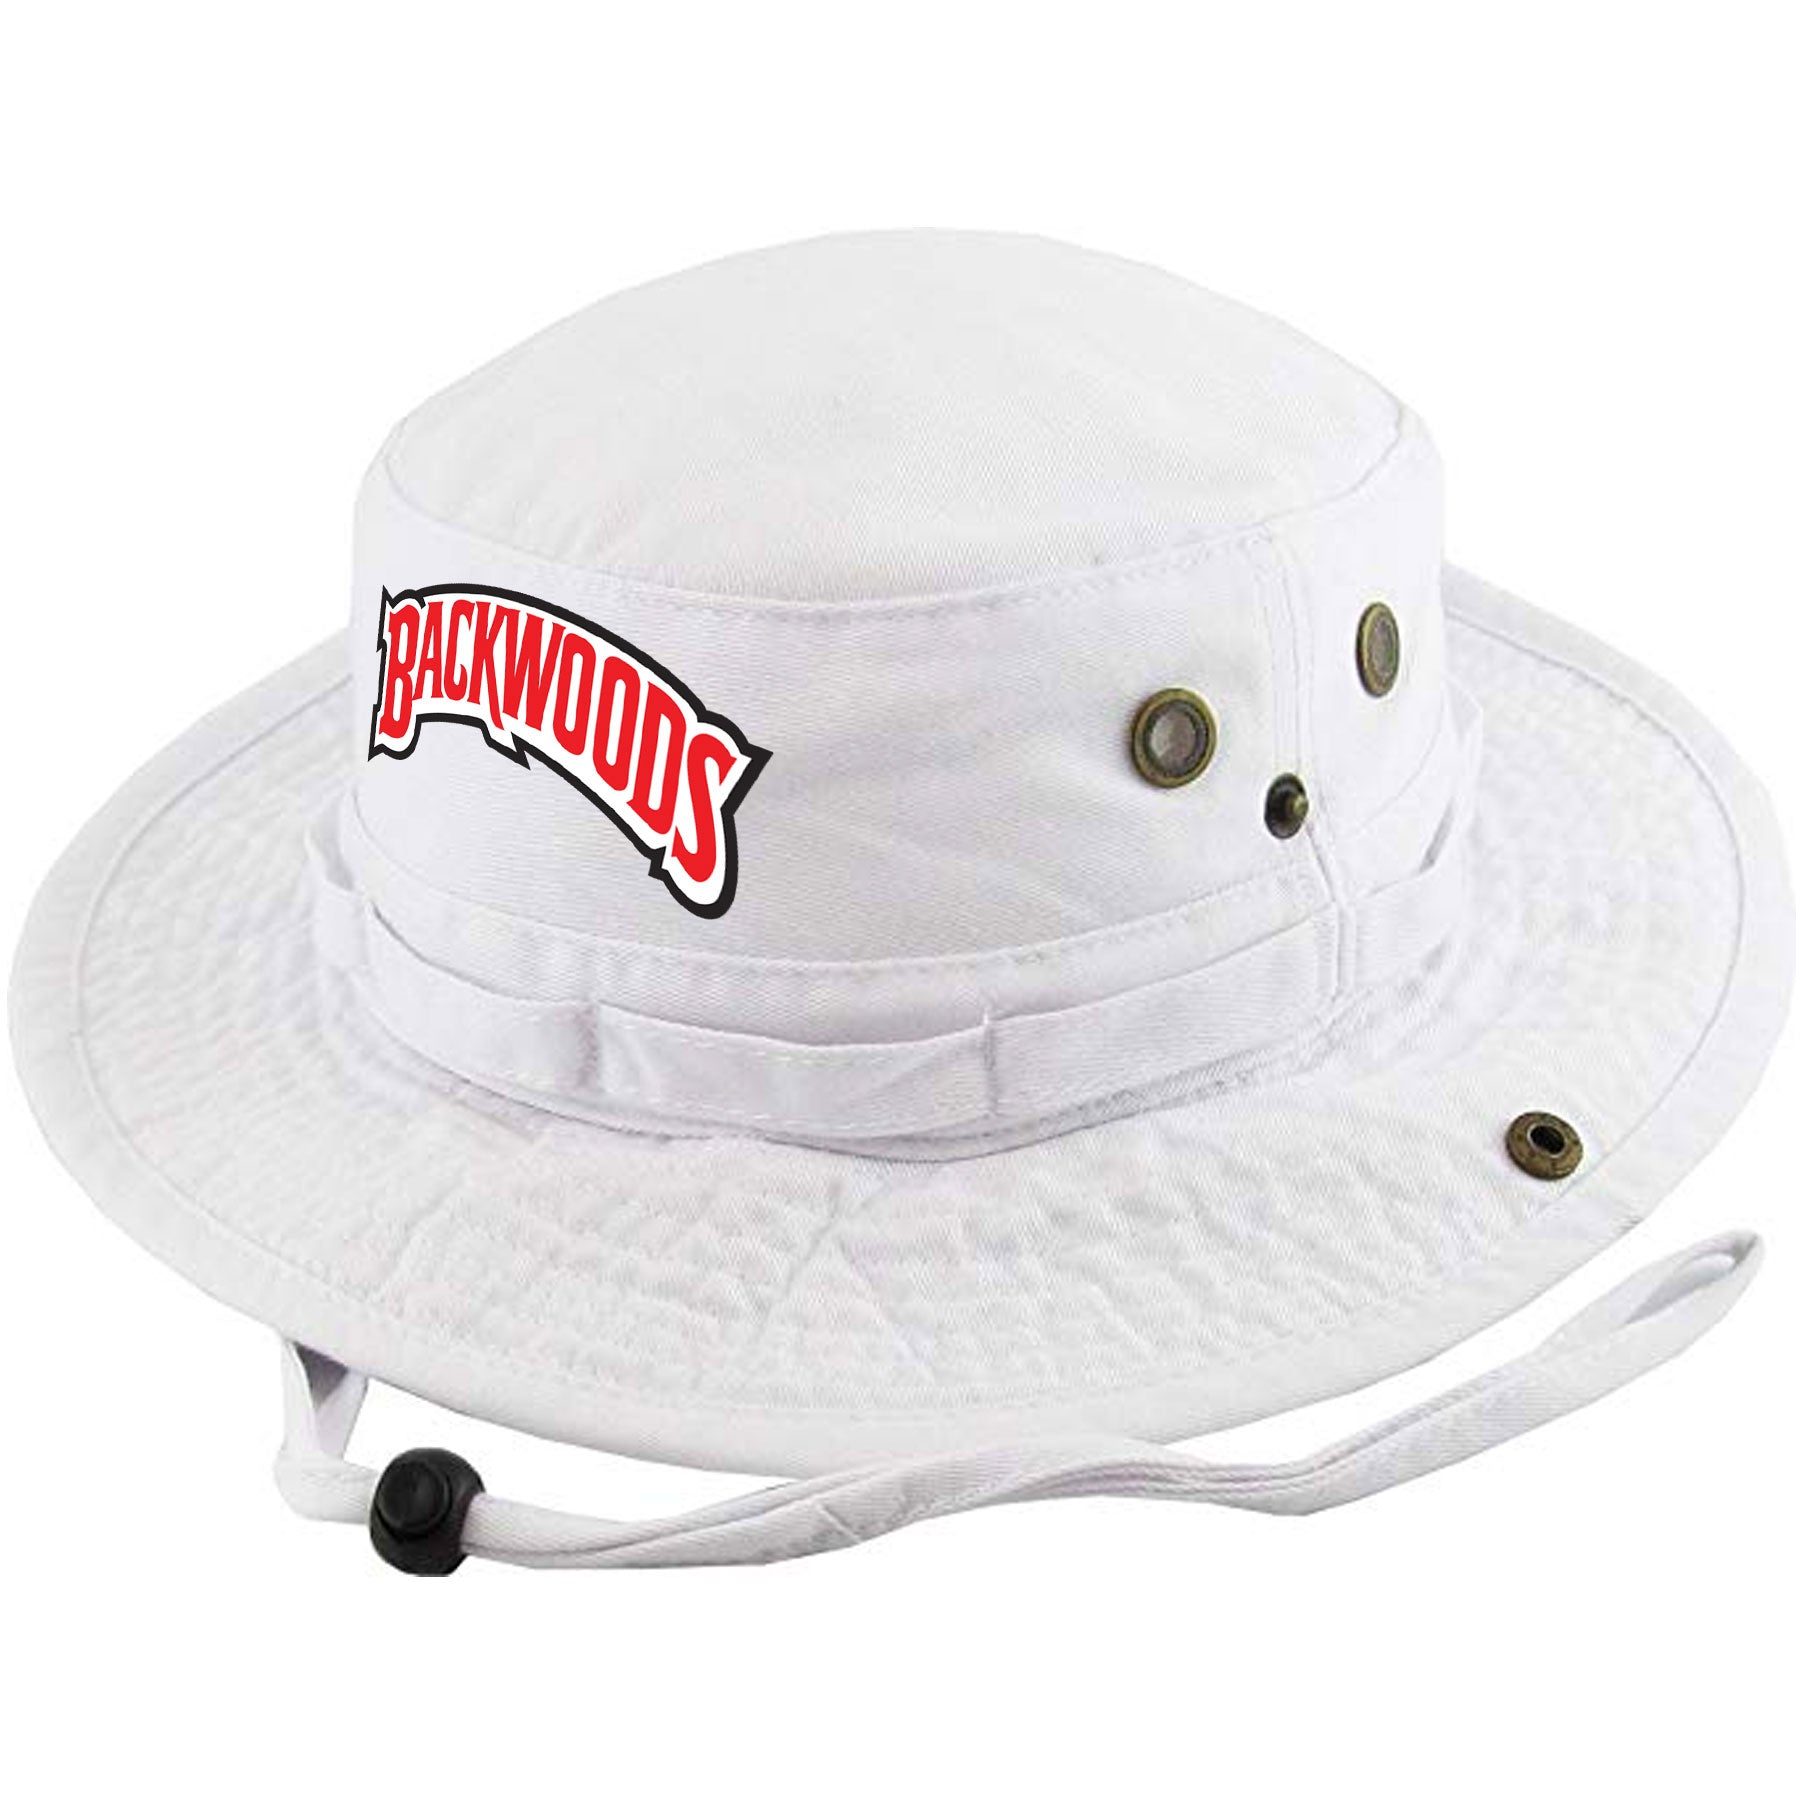 Embroidered on the front of the Russian Cream white Backwoods bucket boonie  hat is the Backwoods 0d32f6fc0073